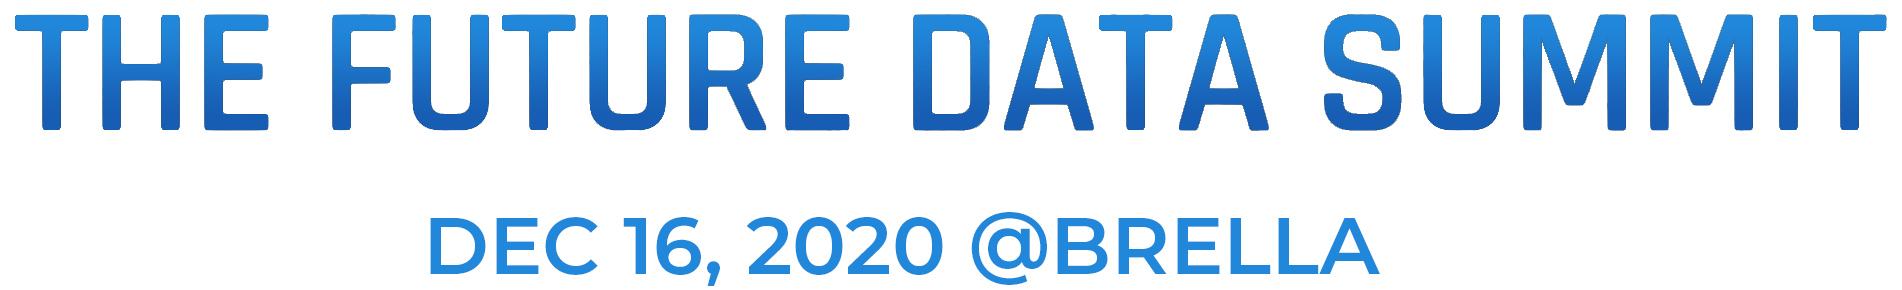 The Future Data Summit DEC 16, 2020 @brellA